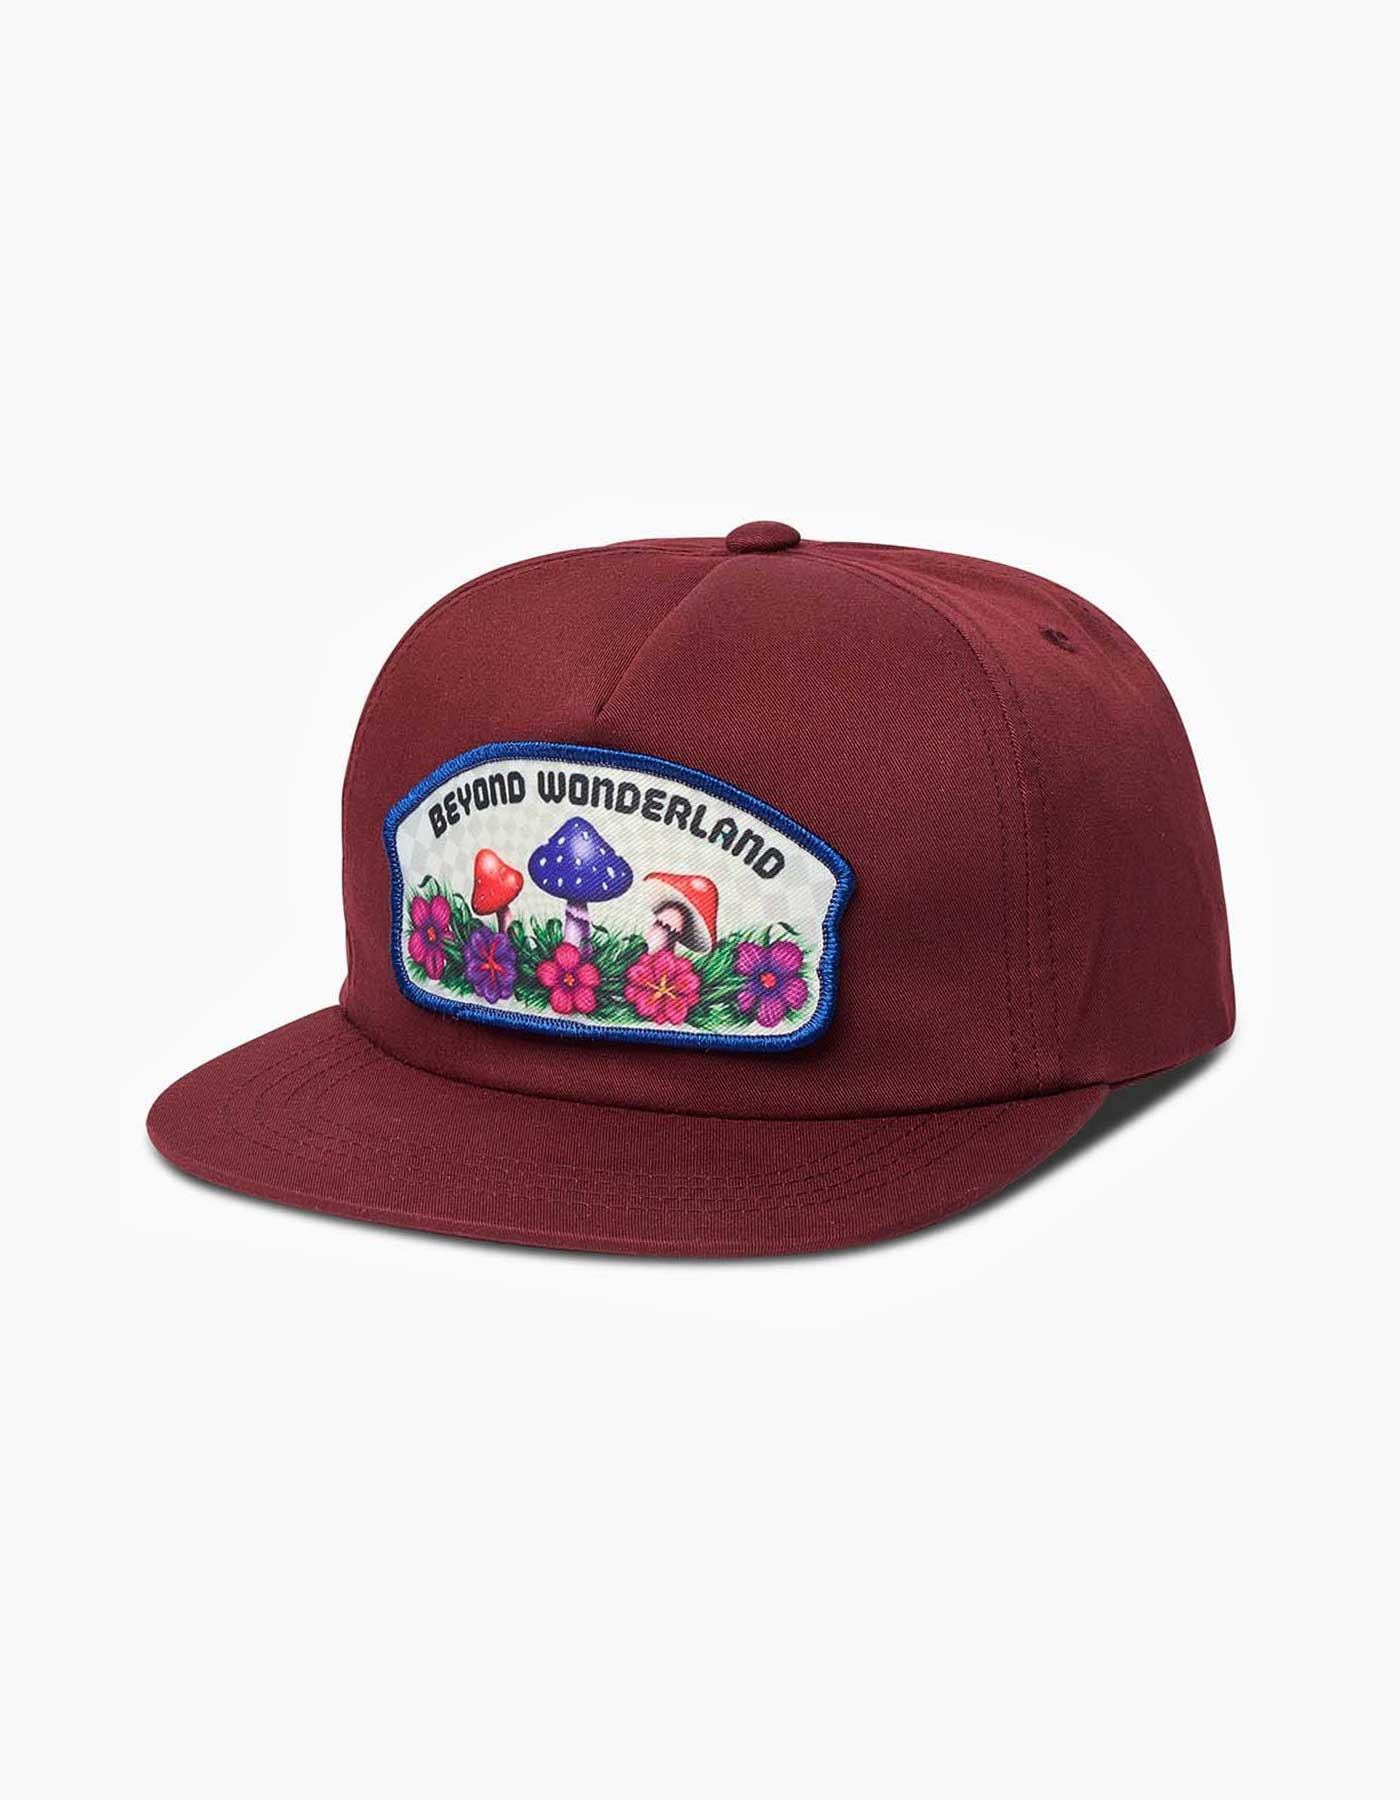 Beyond Wonderland Shroomy Patch 5 Panel Hat